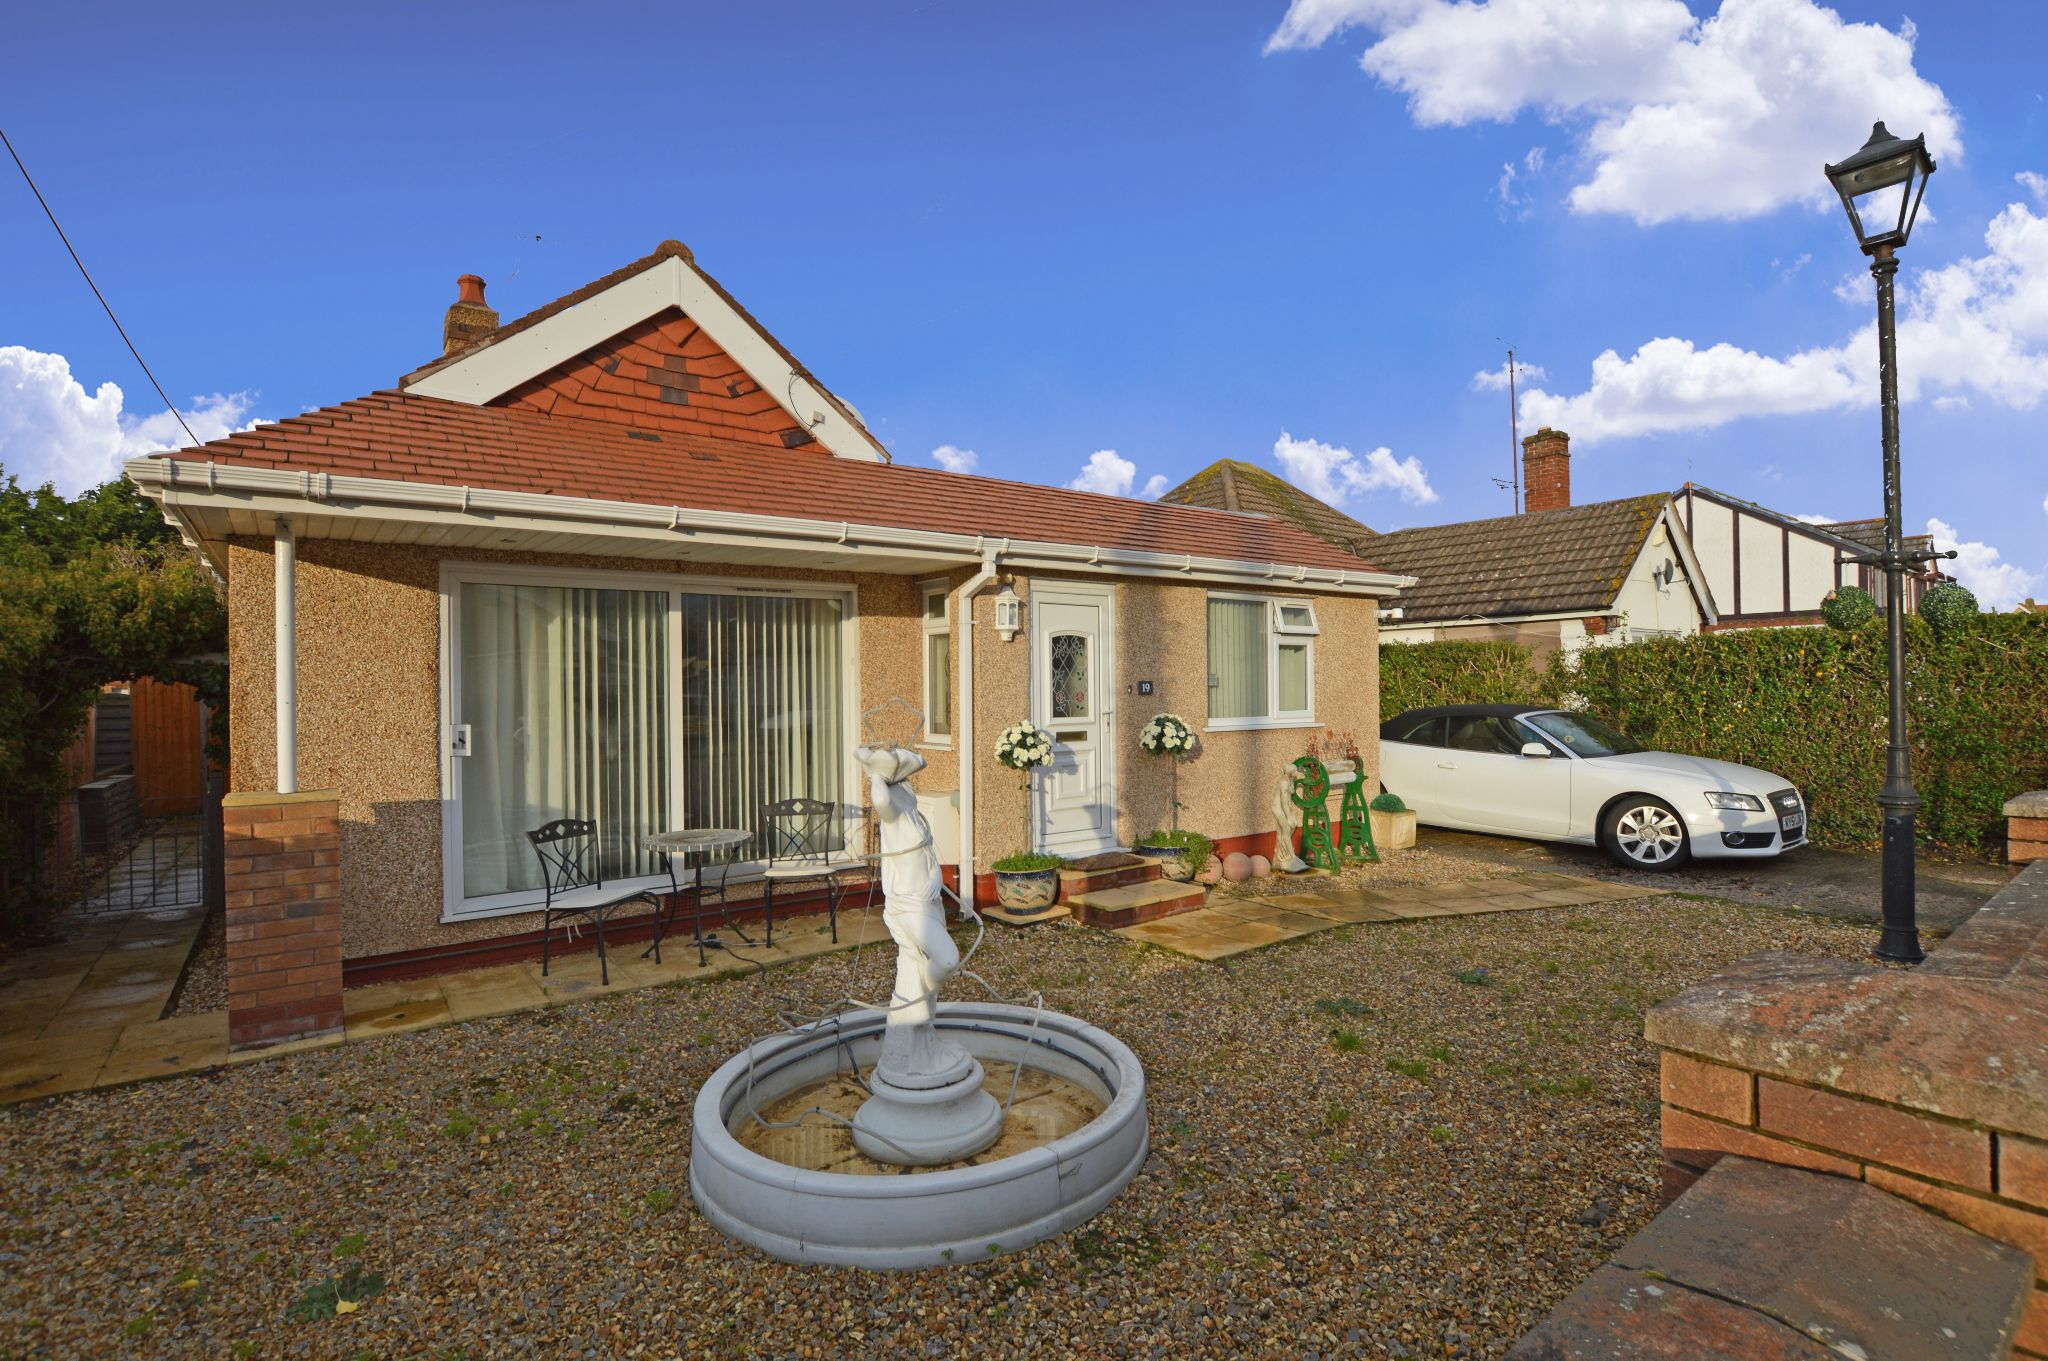 3 bedroom detached bungalow For Sale in Kinmel Bay - Front Aspect